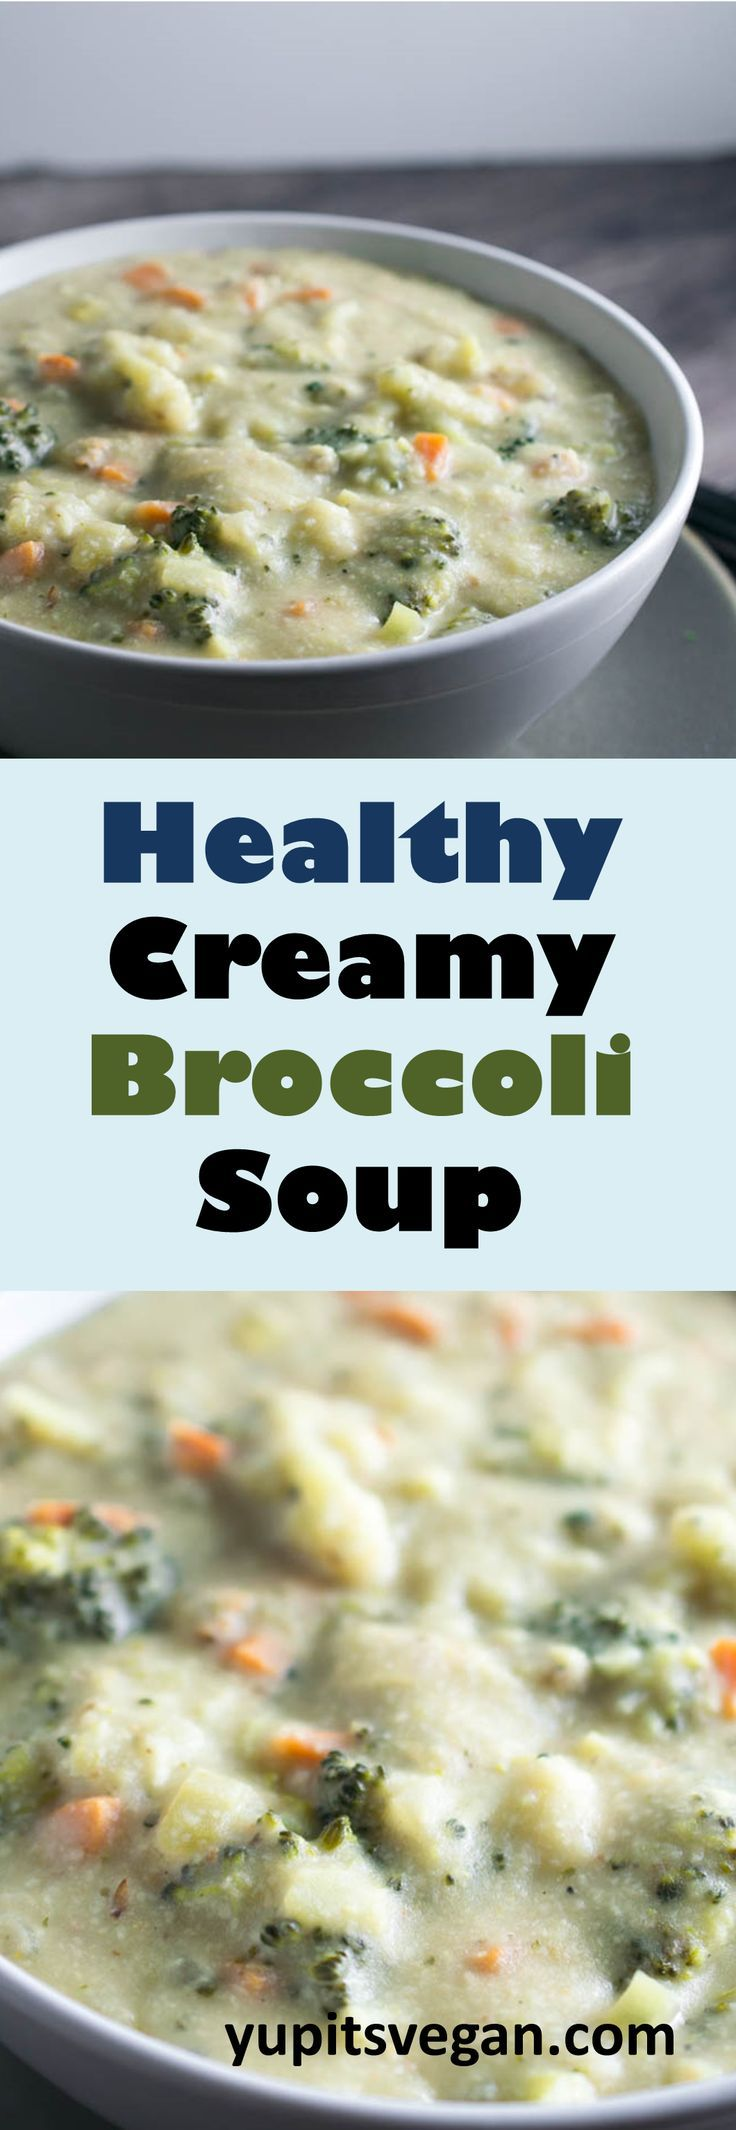 Creamy broccoli soup that tastes rich and delicious but is secretly healthy! You will never guess that it's vegan and full of unexpected nutritious ingredients! #vegan #glutenfree #soup #broccoli